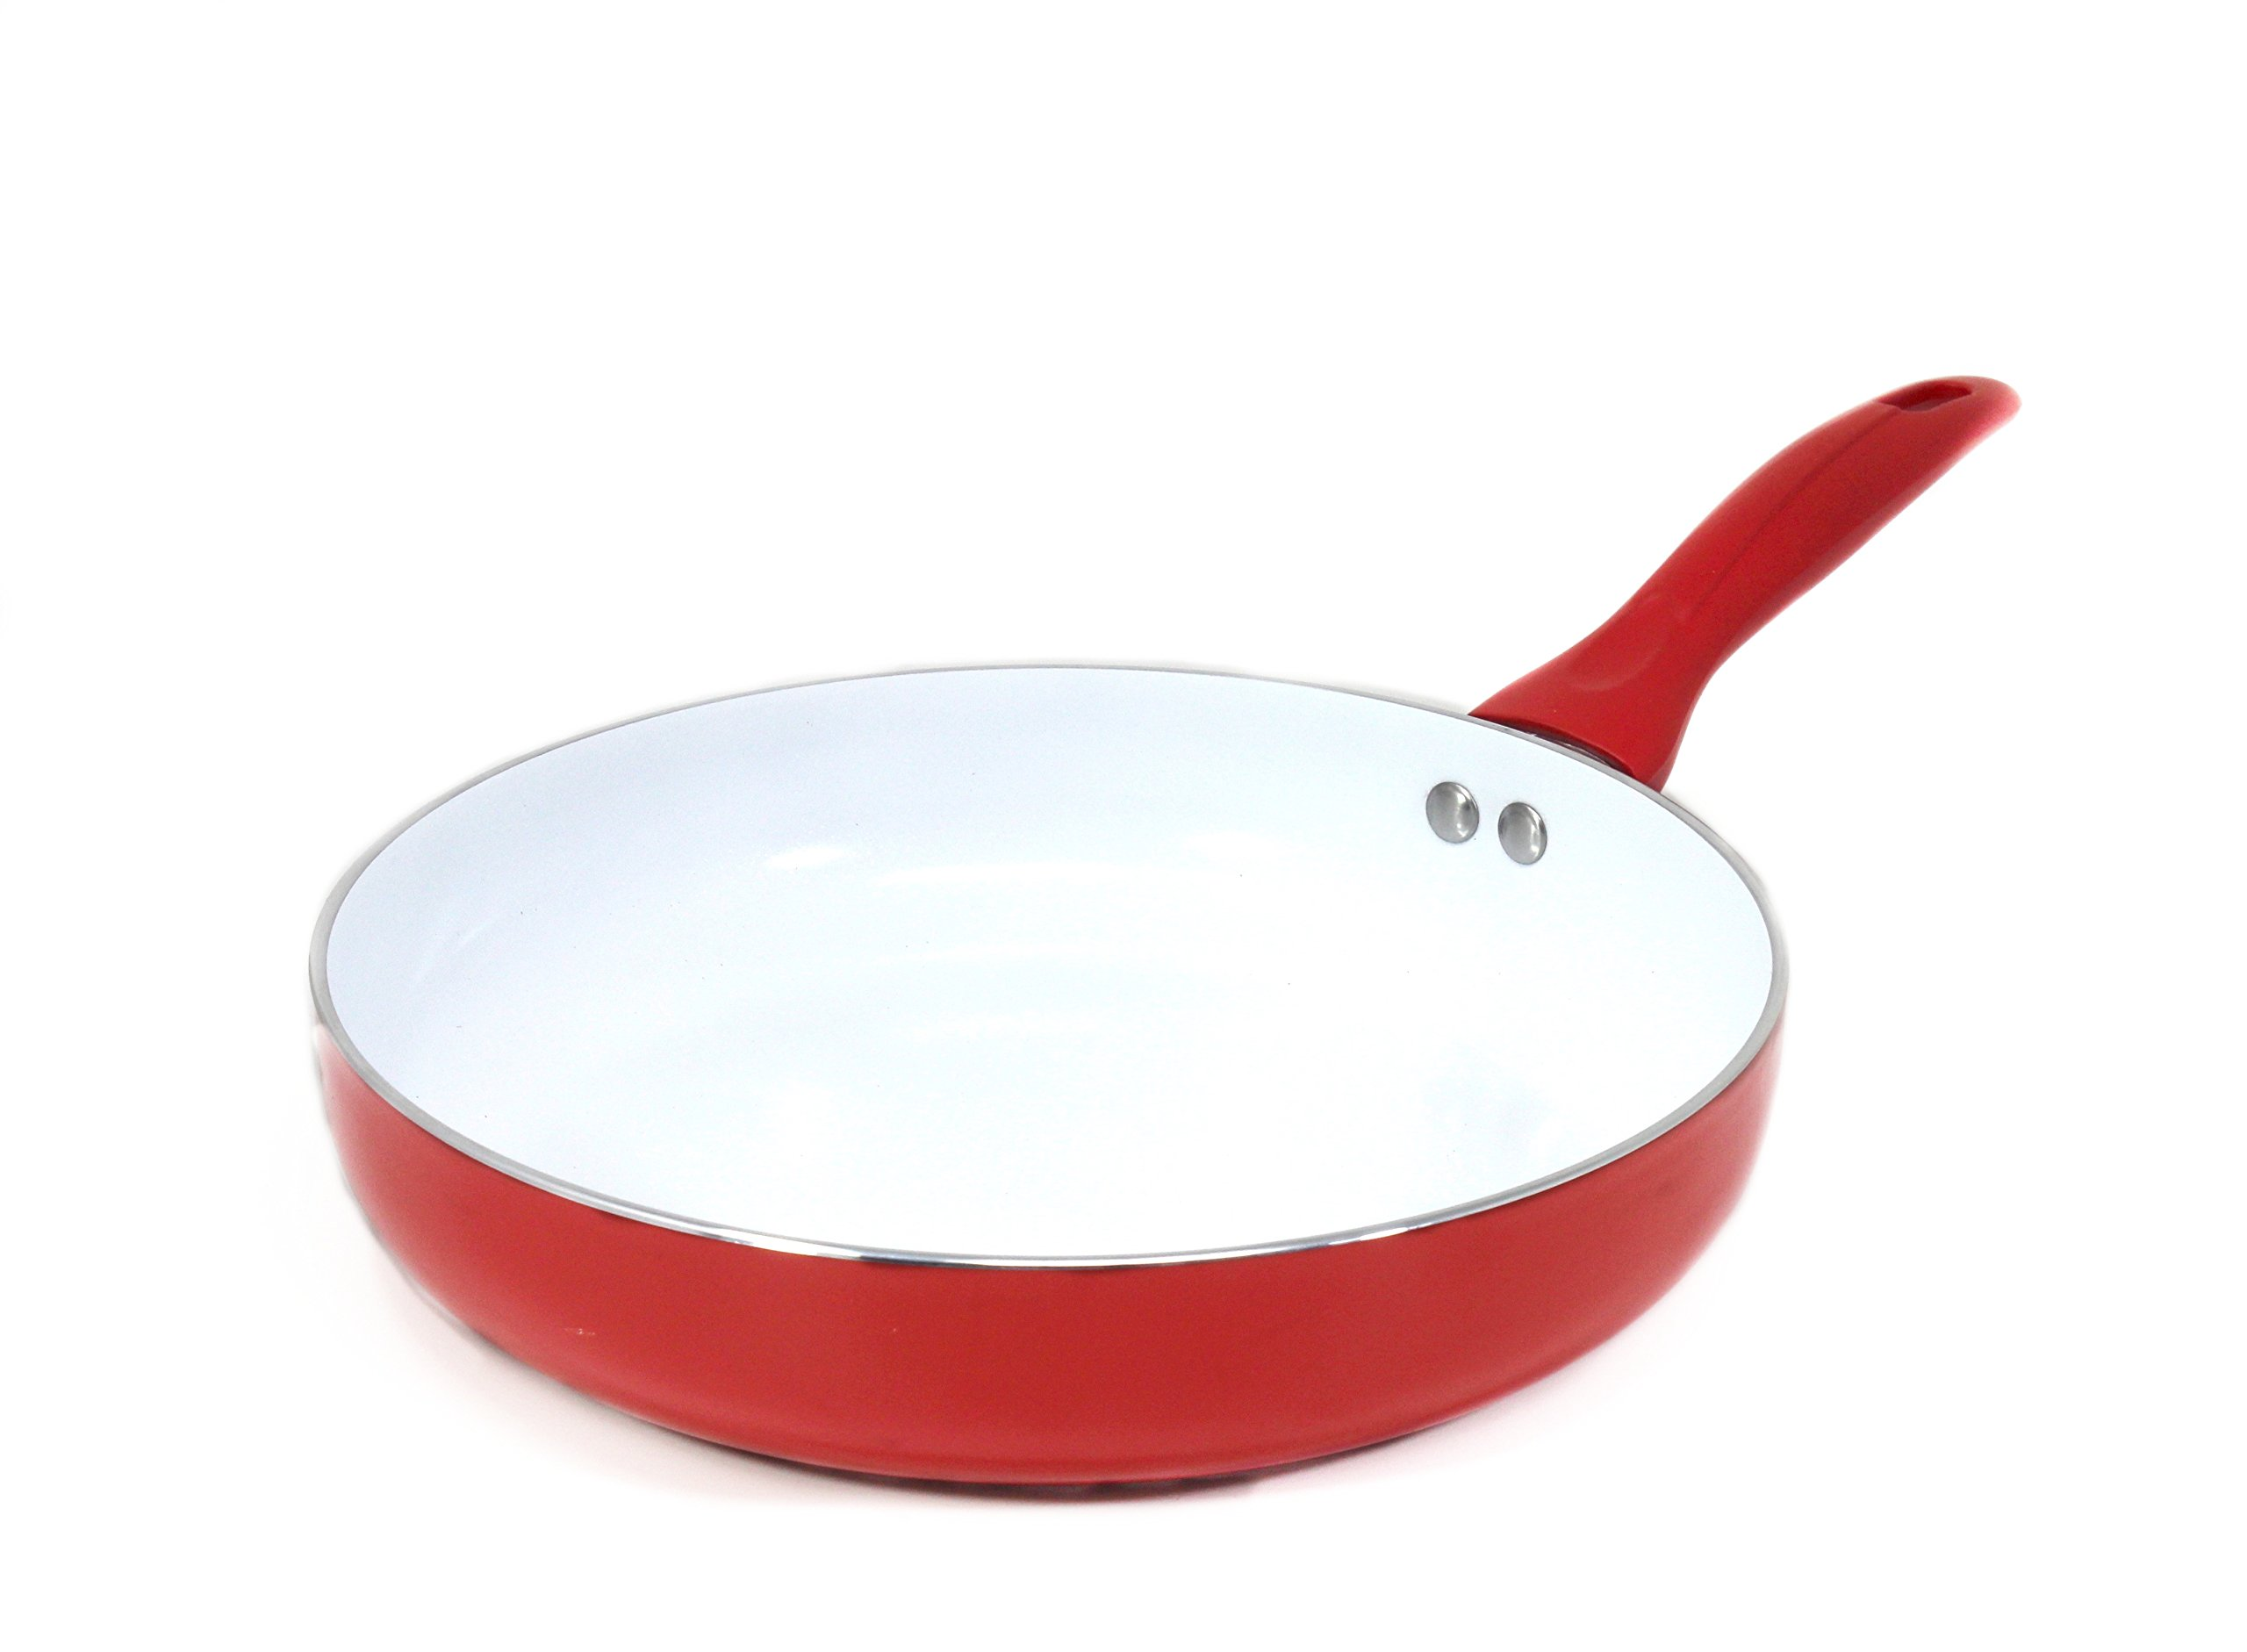 CONCORD 10.5'' Ceramic Coated Non Stick Frying Pan Omelet Skillet Cookware PFOA and PTFE Free